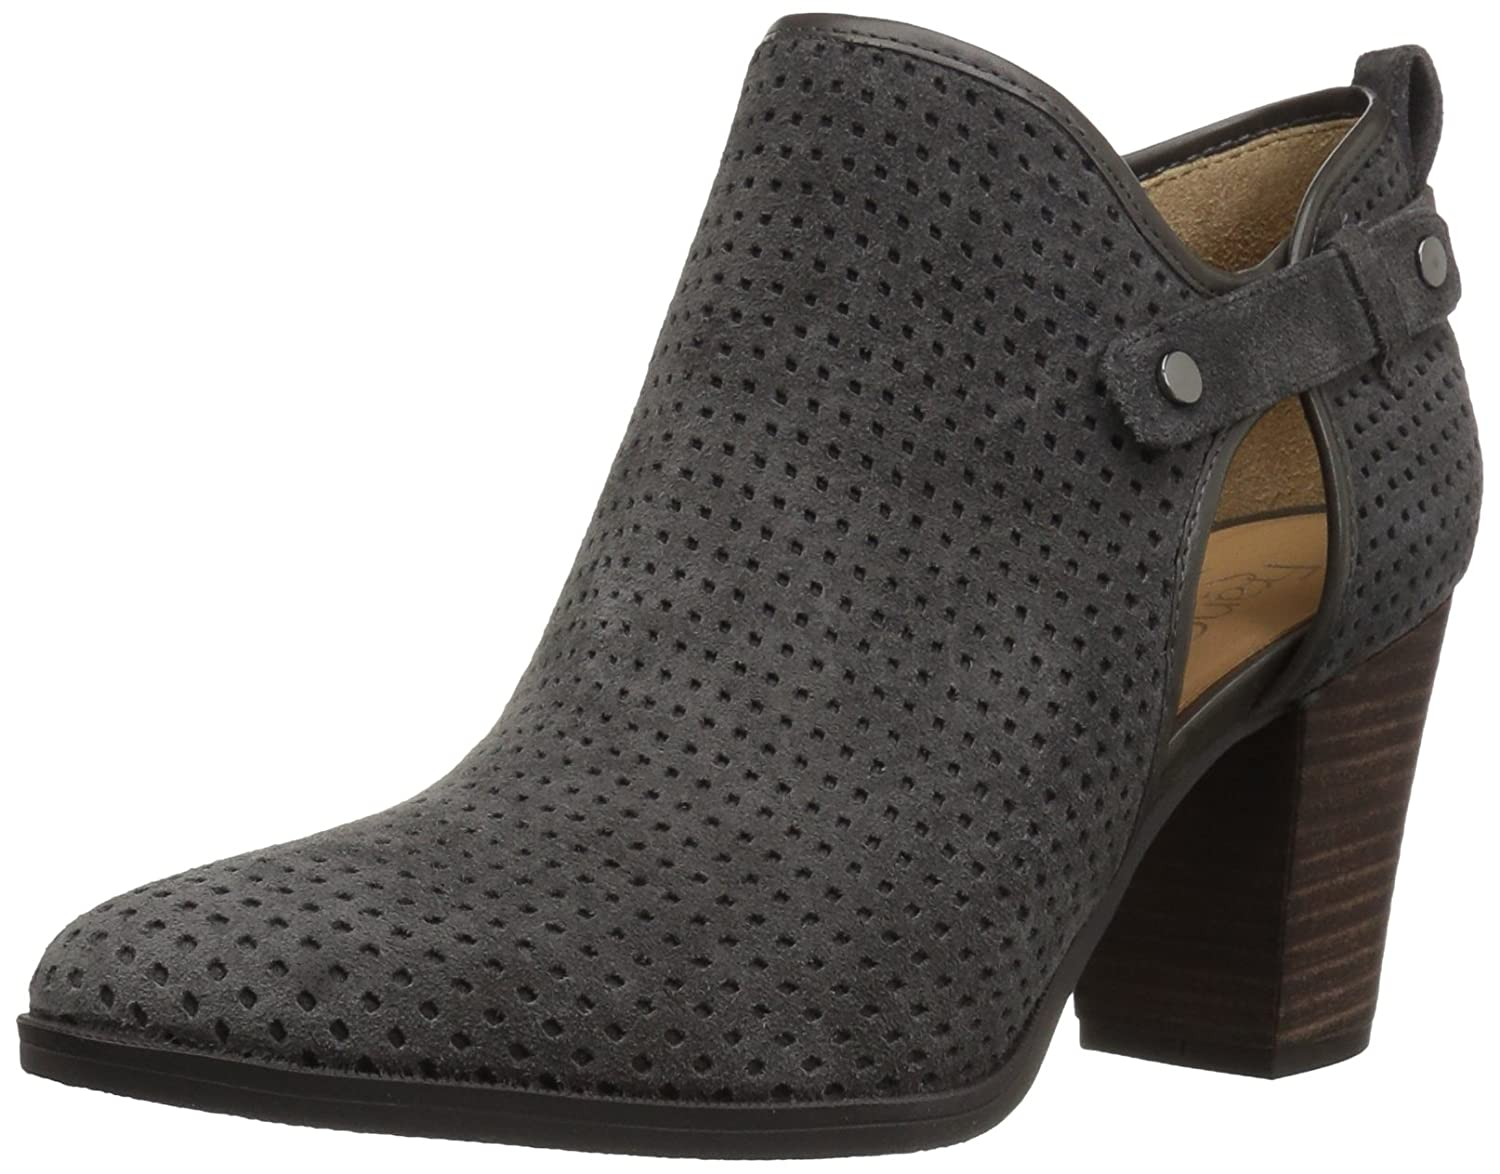 Franco Sarto Women's Dakota Ankle Boot B073YD5X37 10 B(M) US|Charcoal Grey